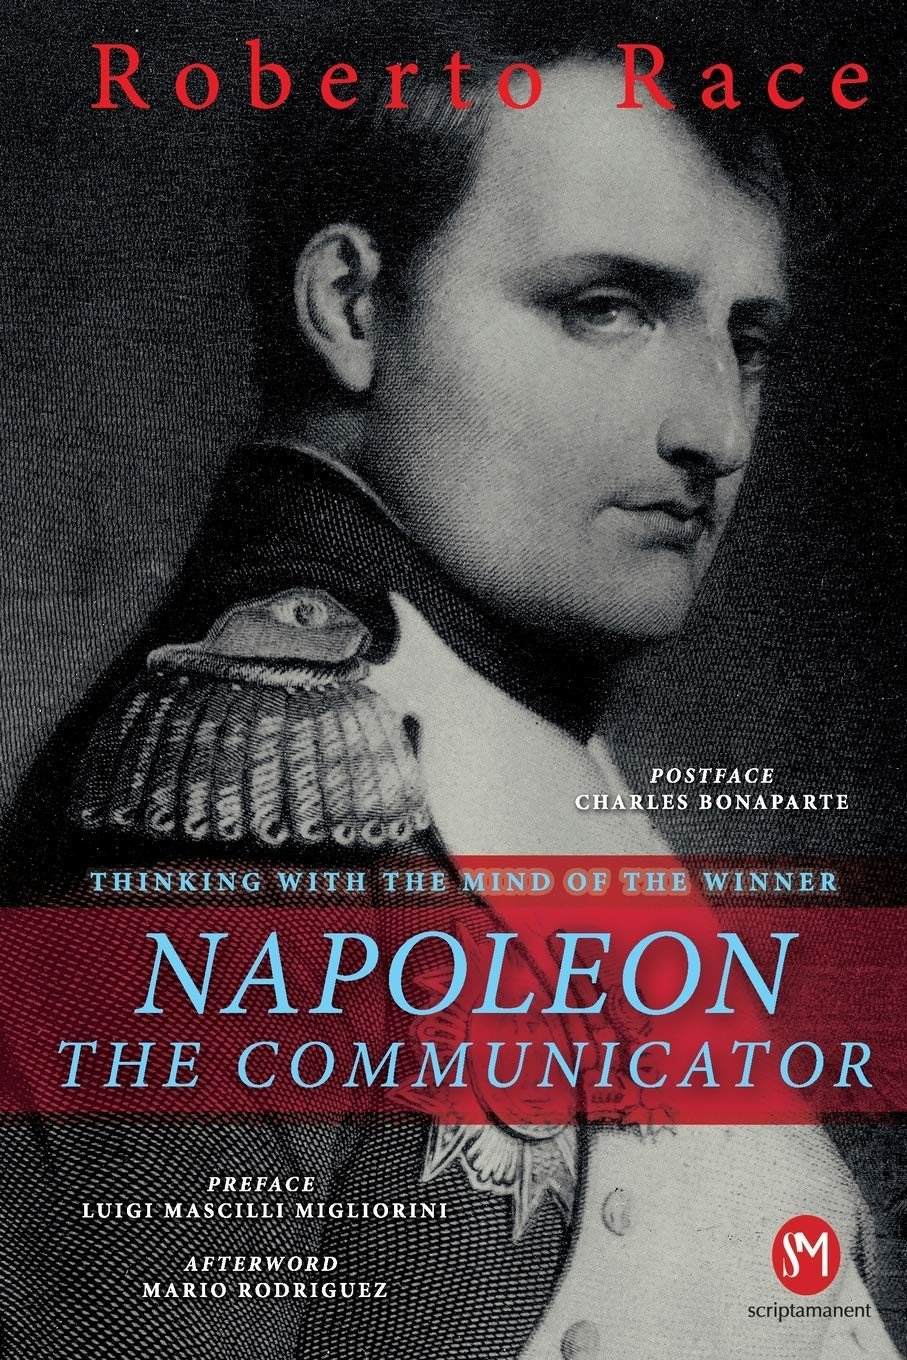 Napoleon the Communicator